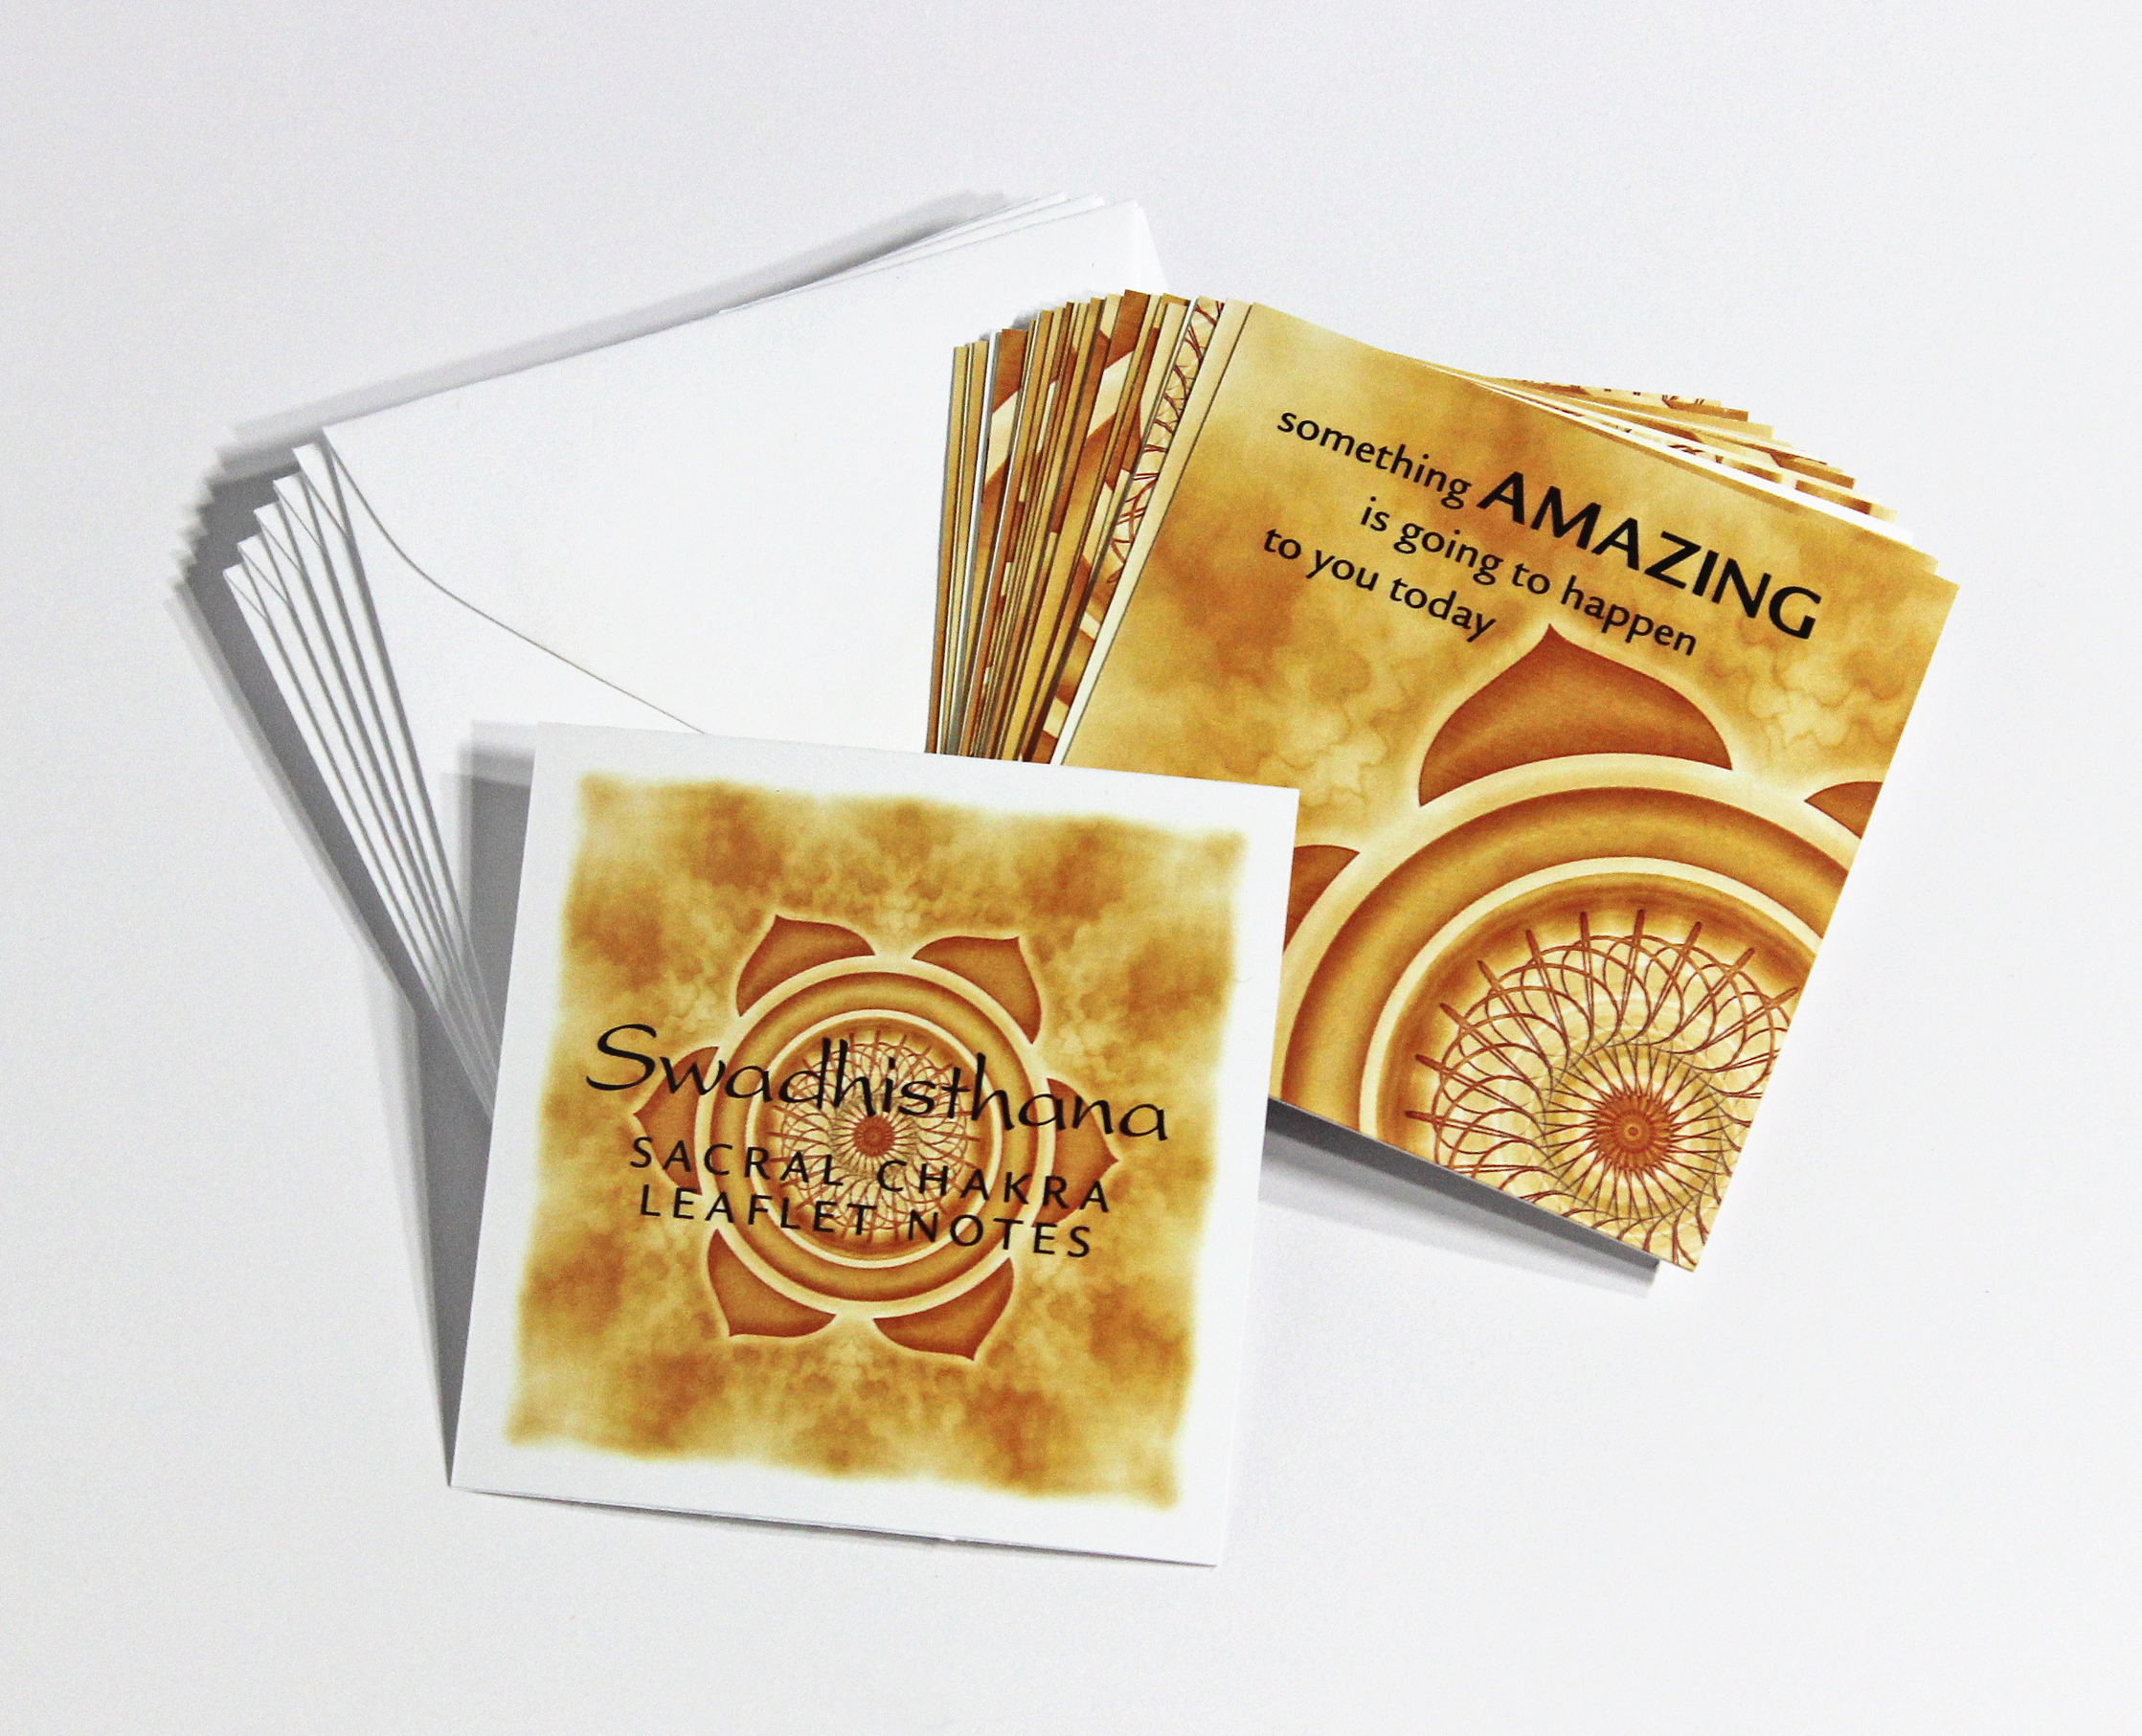 SACRAL   CHAKRA LEAFLET NOTES - $18  Connect with your emotions and experience each moment as it is, fully and deeply, with our tiny Sacral Chakra LeafLet Notes.